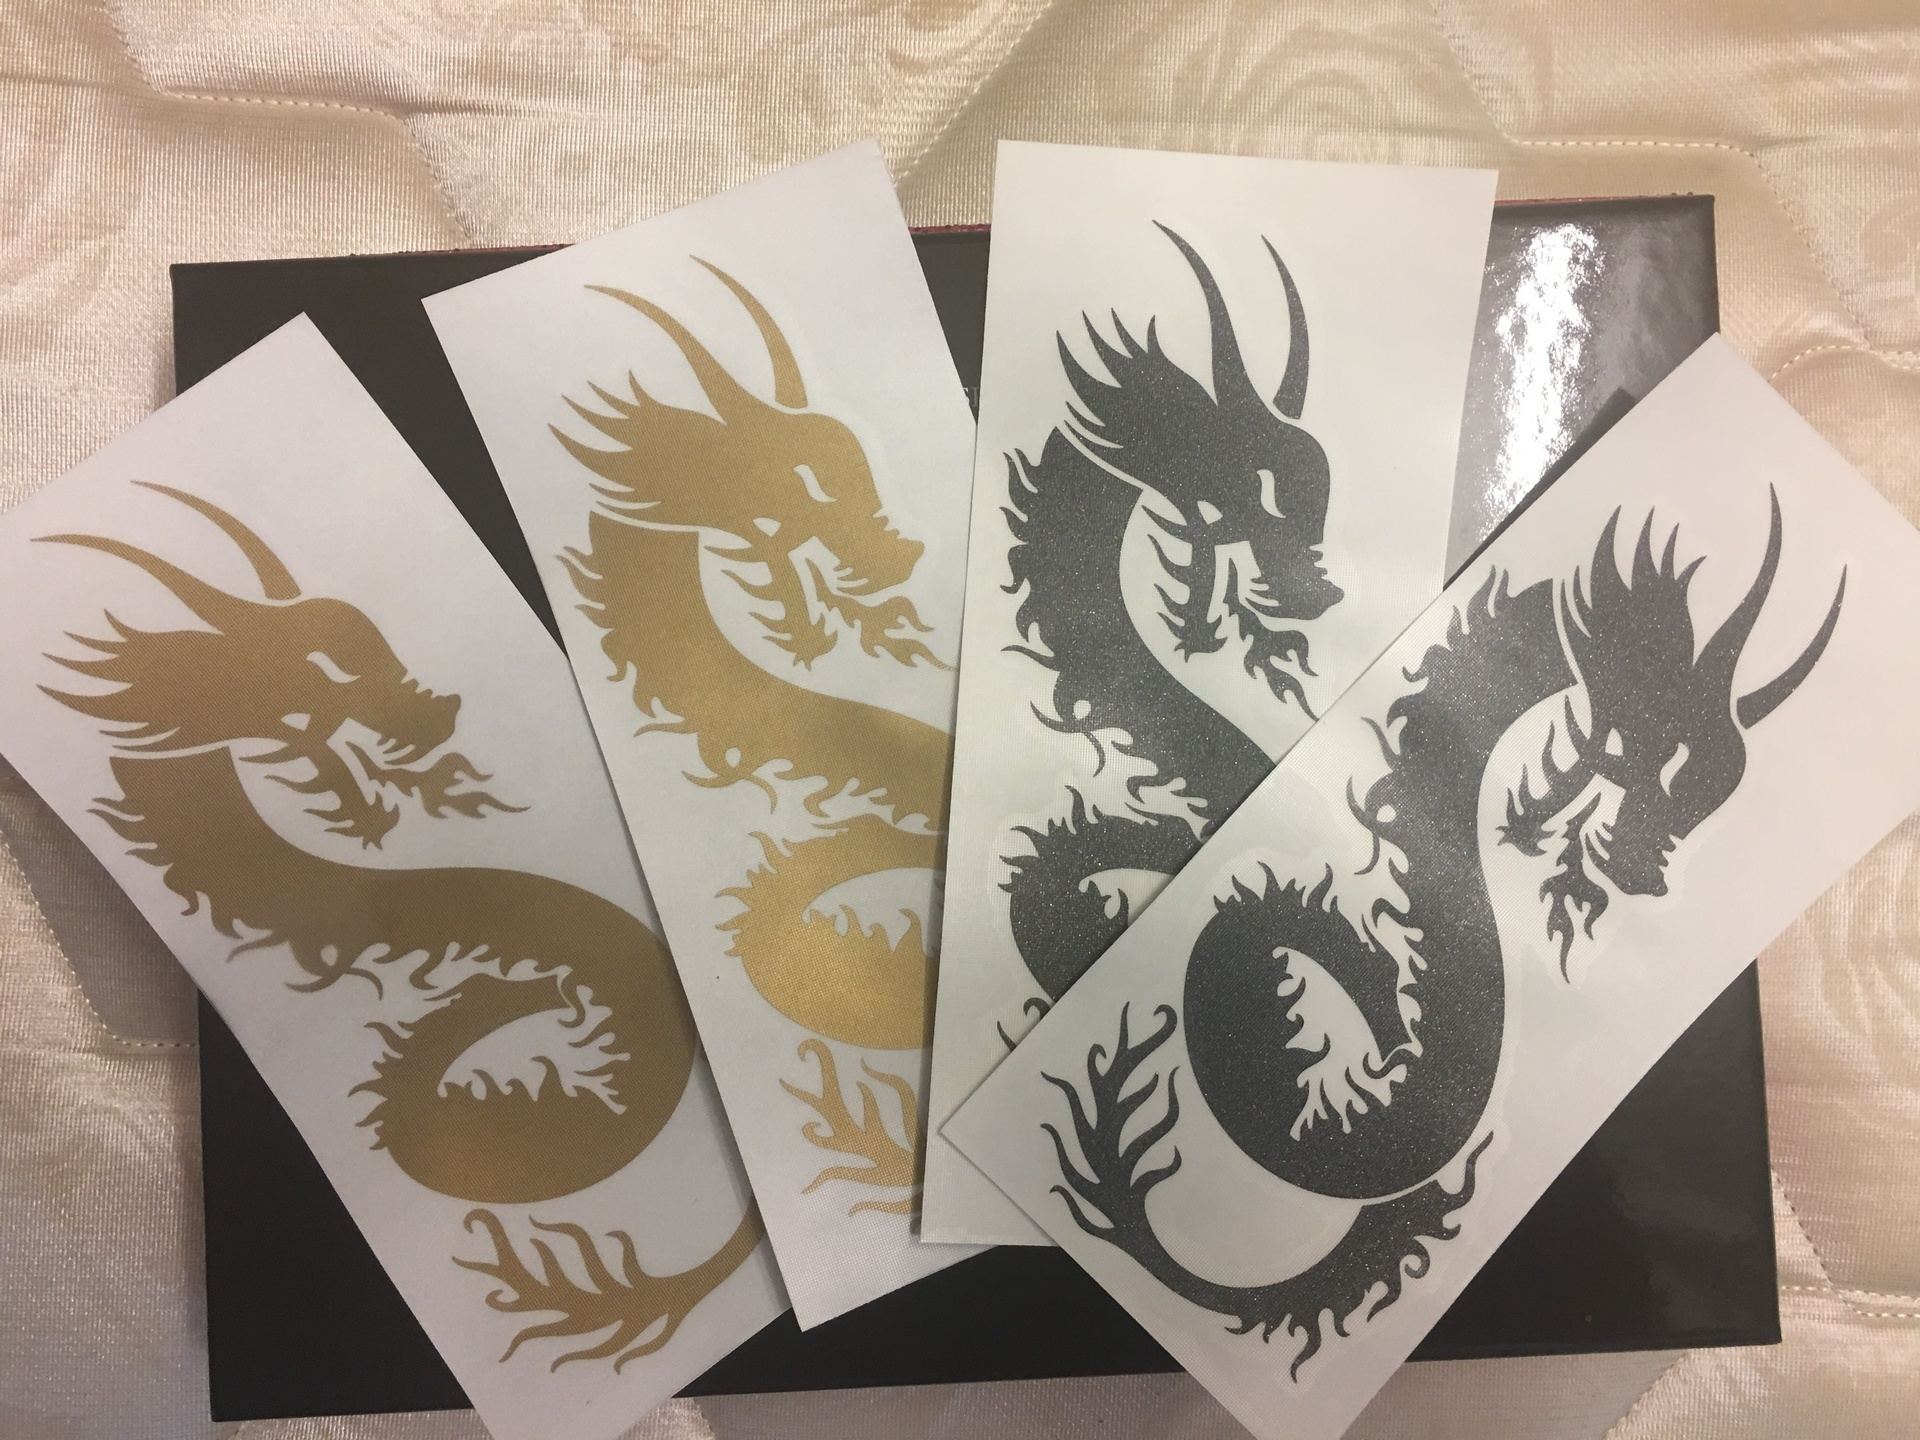 Erin's photograph of their Long Flaming Dragon Sticker